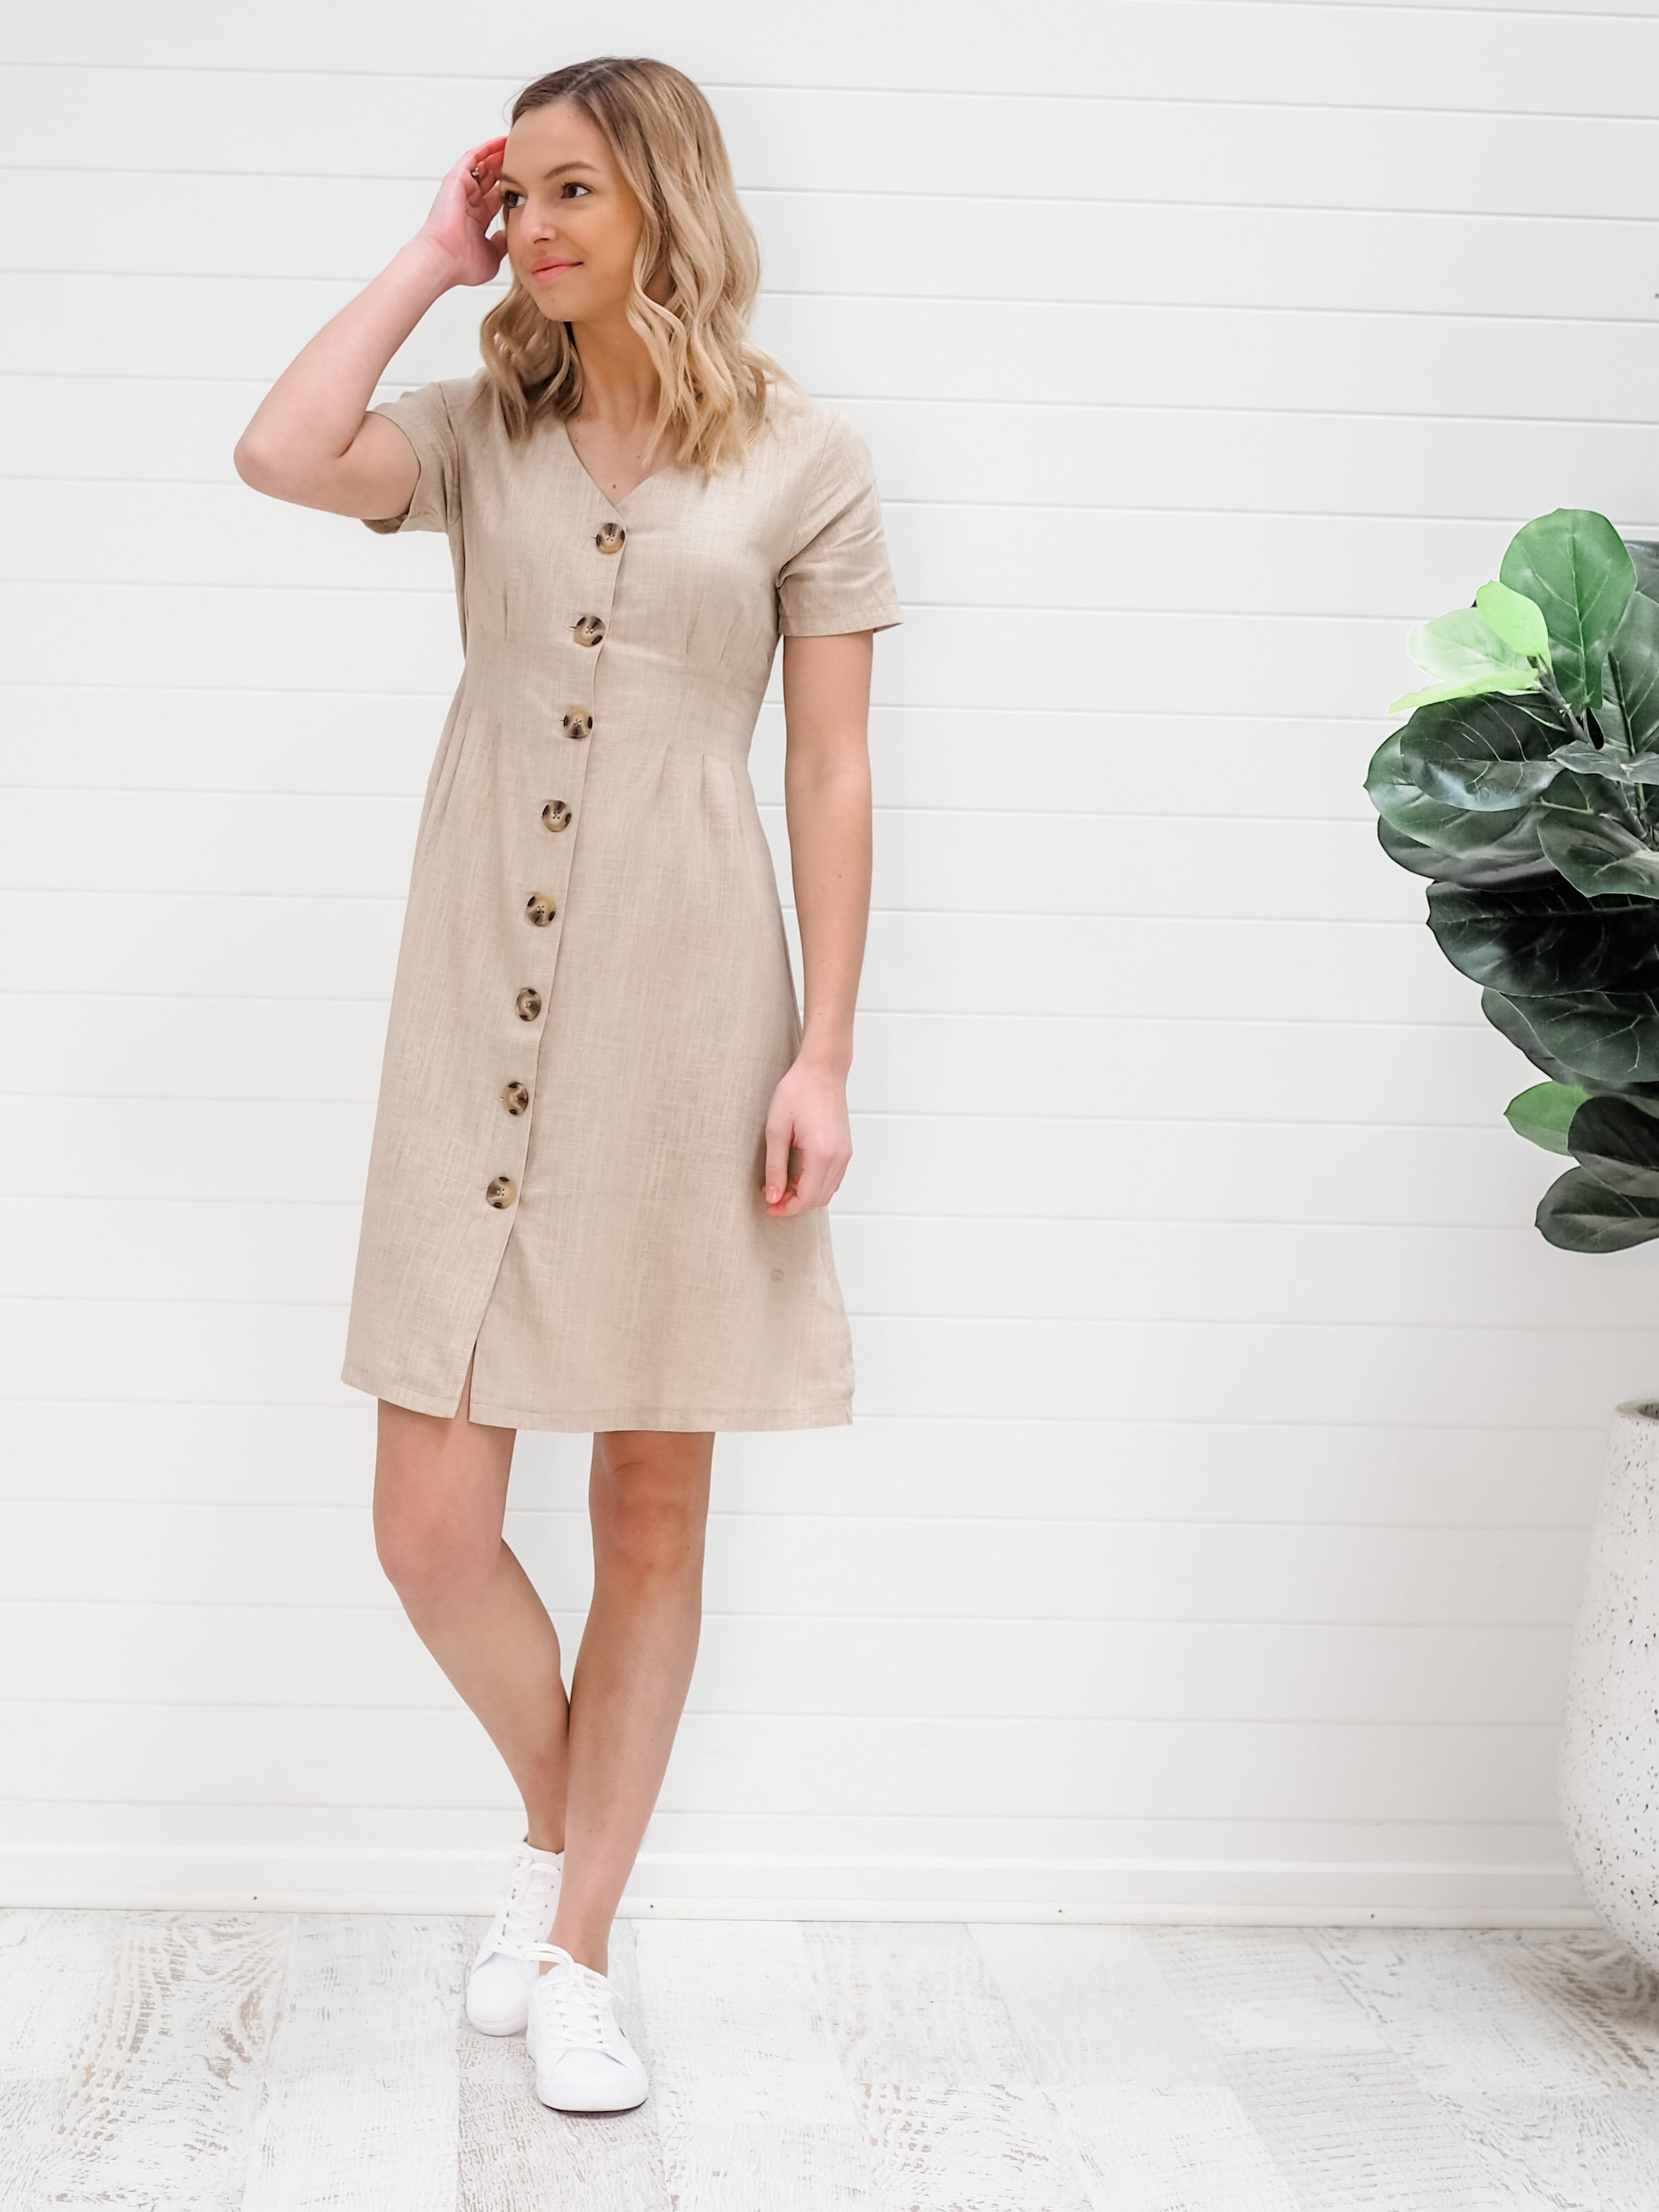 Shiloh Dress - Oatmeal